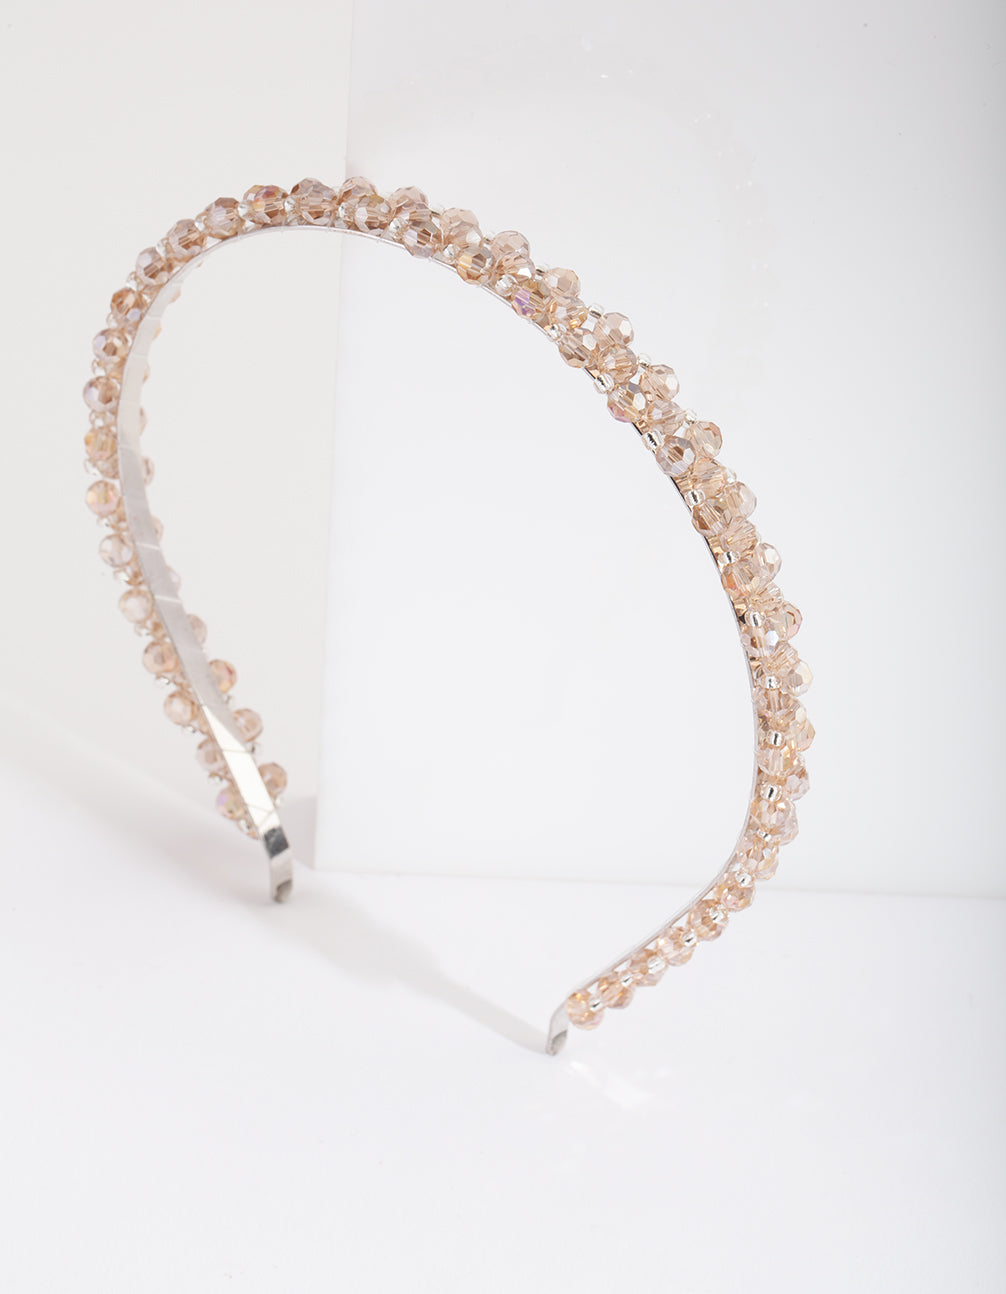 Silver Neutral Glass Bead Headband